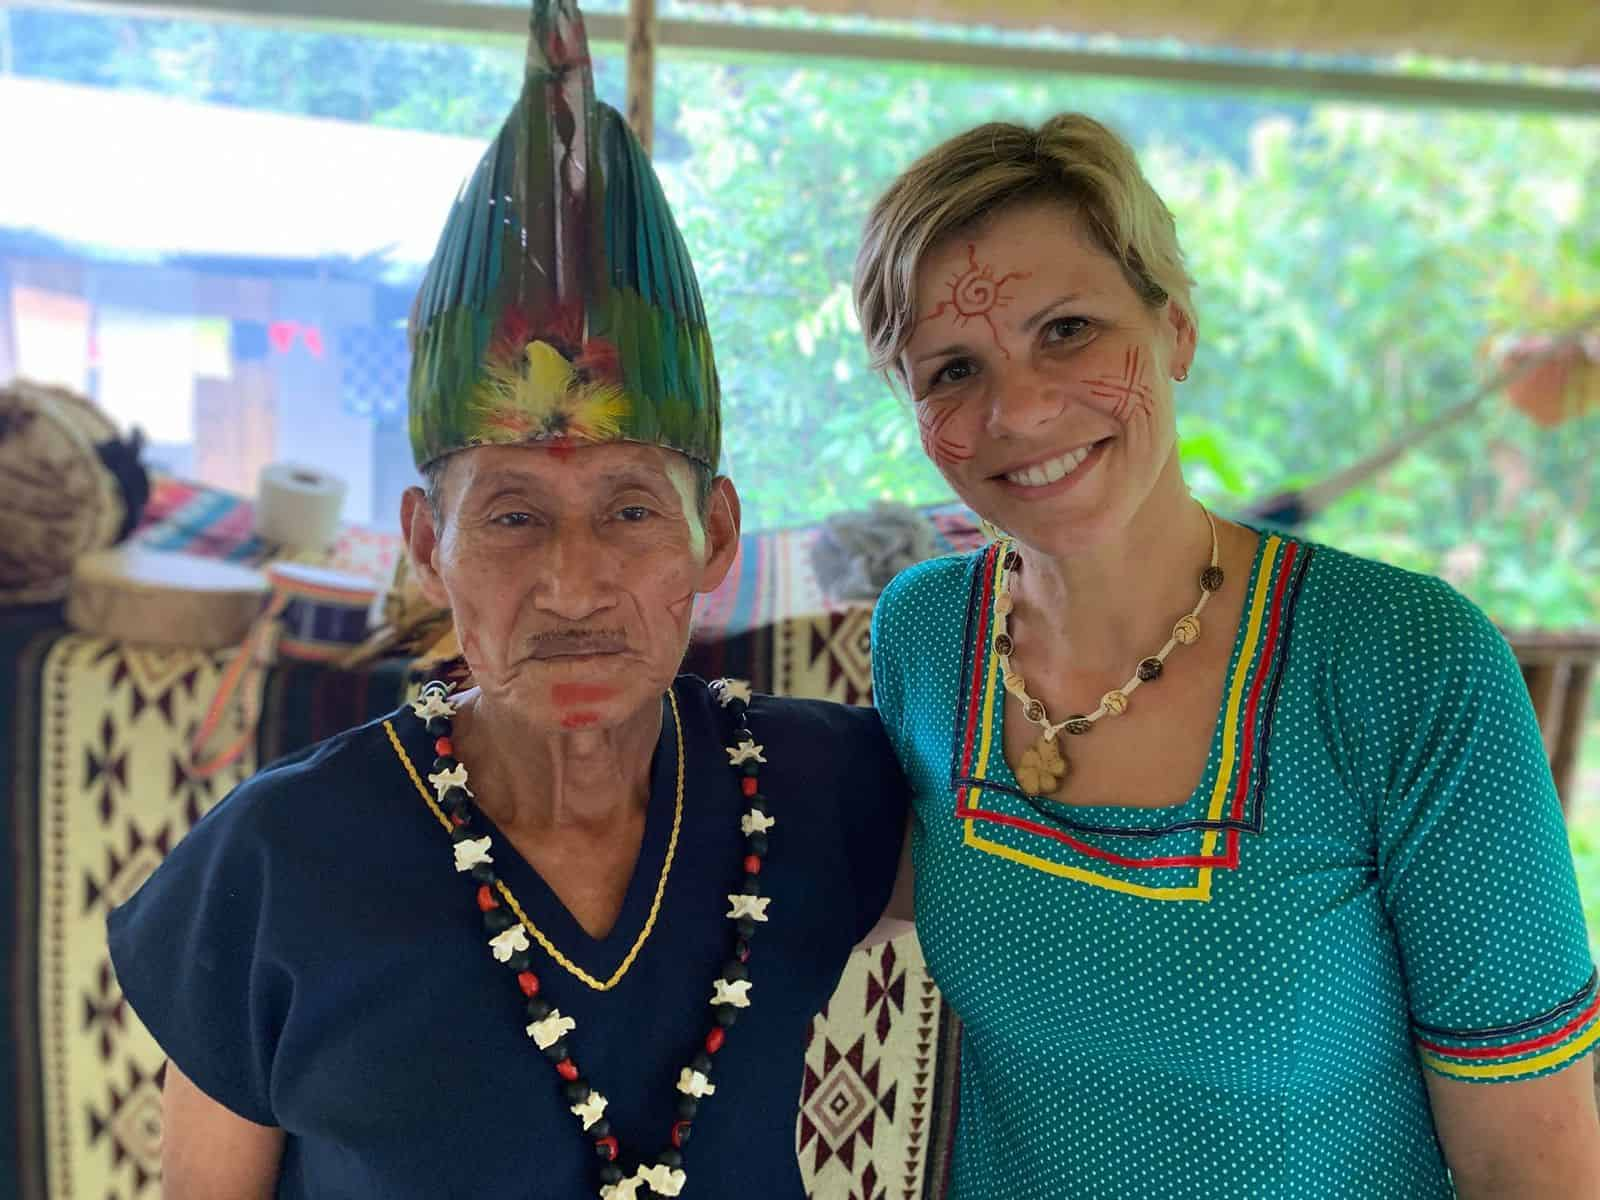 5-day retreat with two Ayahuasca ceremonies - Feather Crown